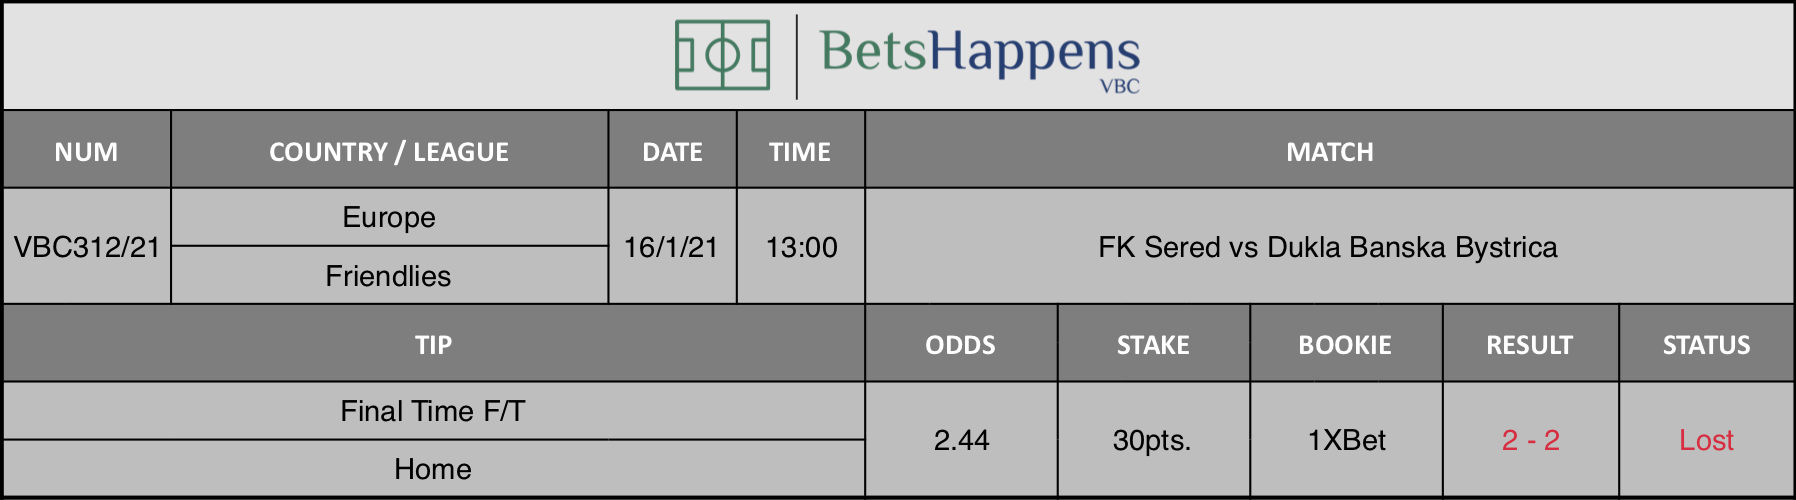 Results of our tip for the FK Sered vs Dukla Banska Bystrica   match where Final Time F/T Home is recommended.